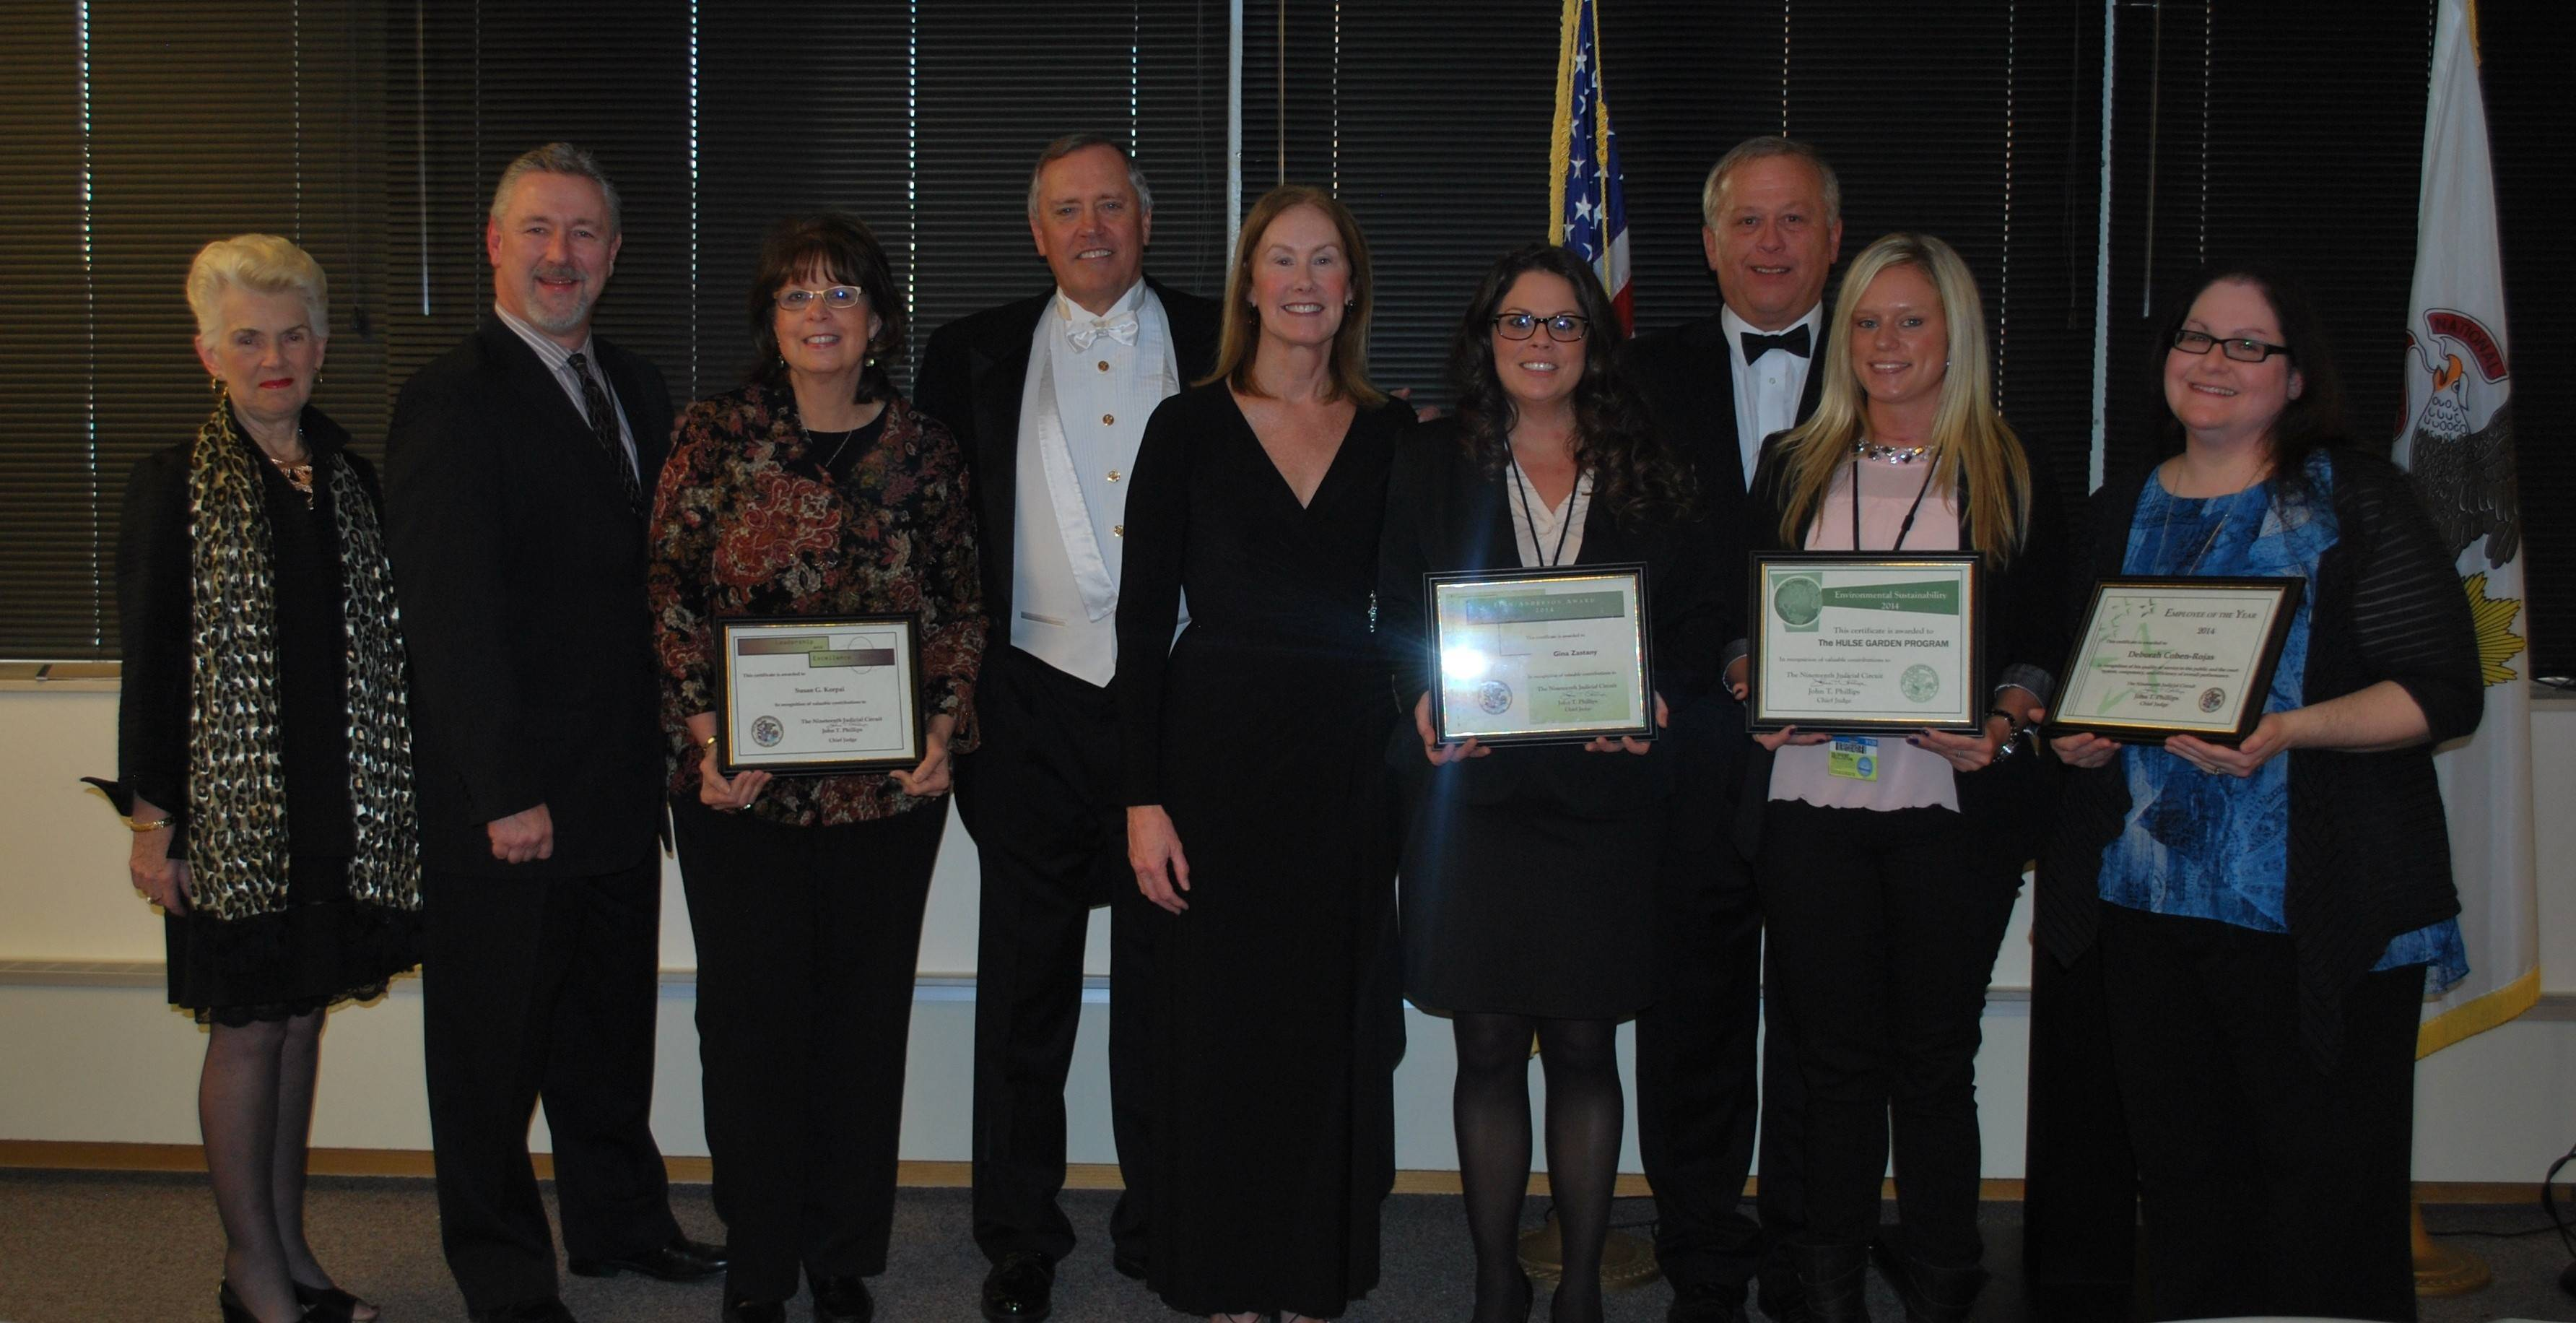 Lake County courts employees honored during the 19th Judicial Circuit's recent awards ceremony included, from left: Diane Flory, Judge Charles D. Johnson, Susan Korpai, Chief Judge John Phillips, Circuit Judge Margaret Mullen, Gina Zastany, Executive Director Robert Zastany, Tracy Sompolski and Deborah Cohen-Rojas.